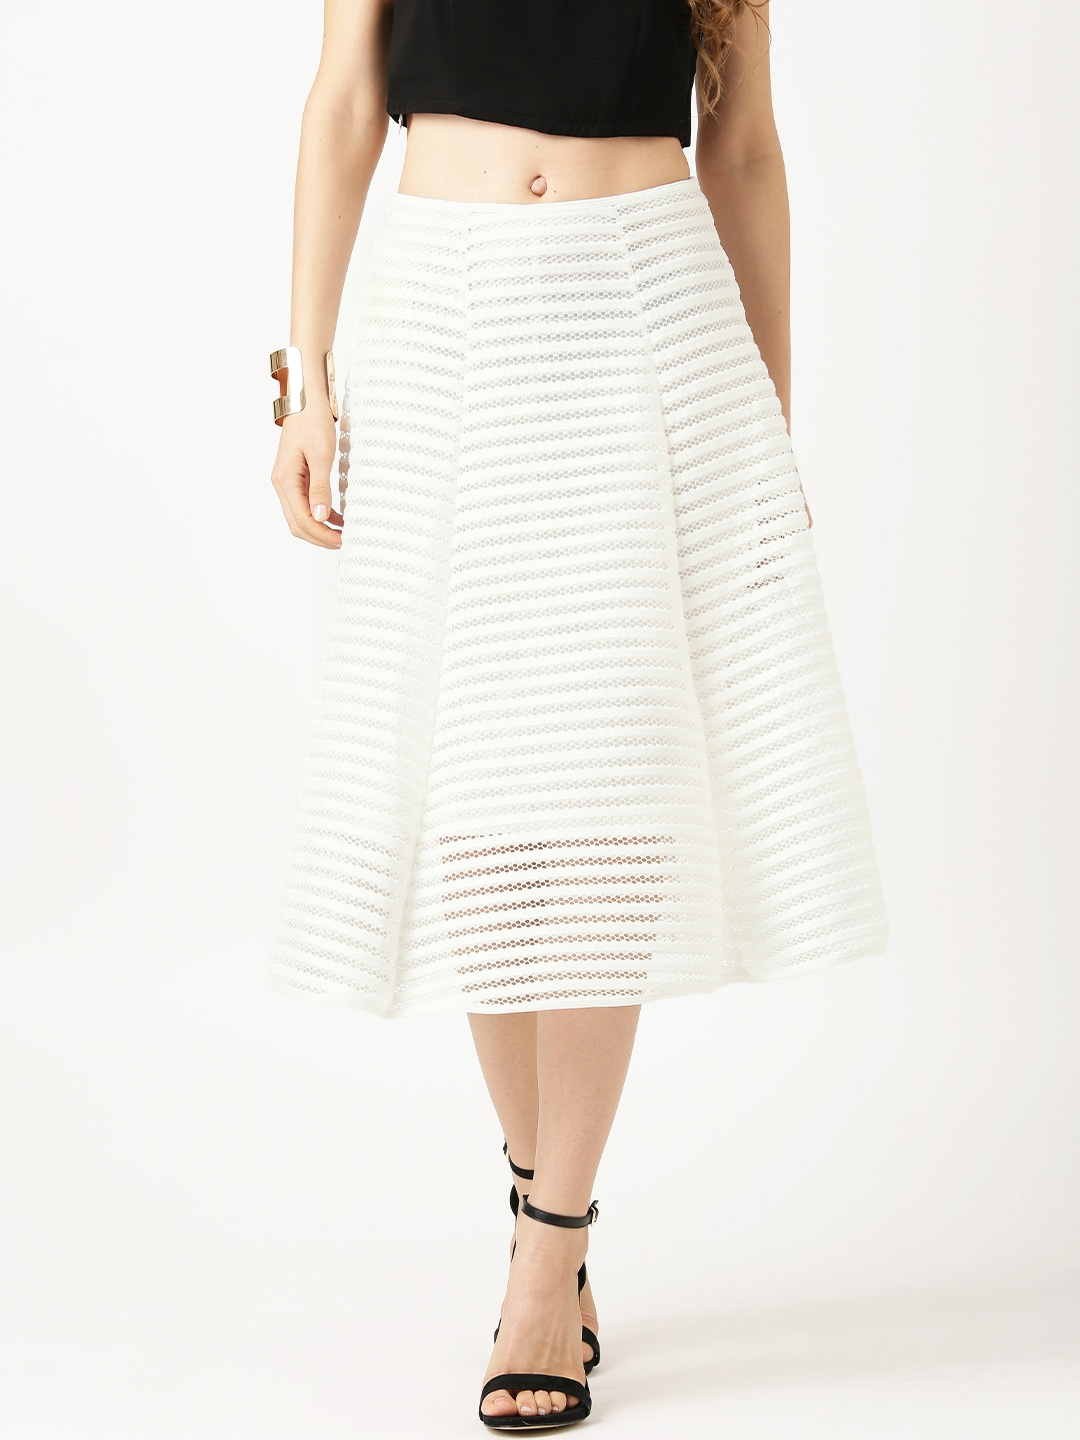 Buy QUIZ Navy Patterned A Line Skirt - Skirts for Women | Myntra